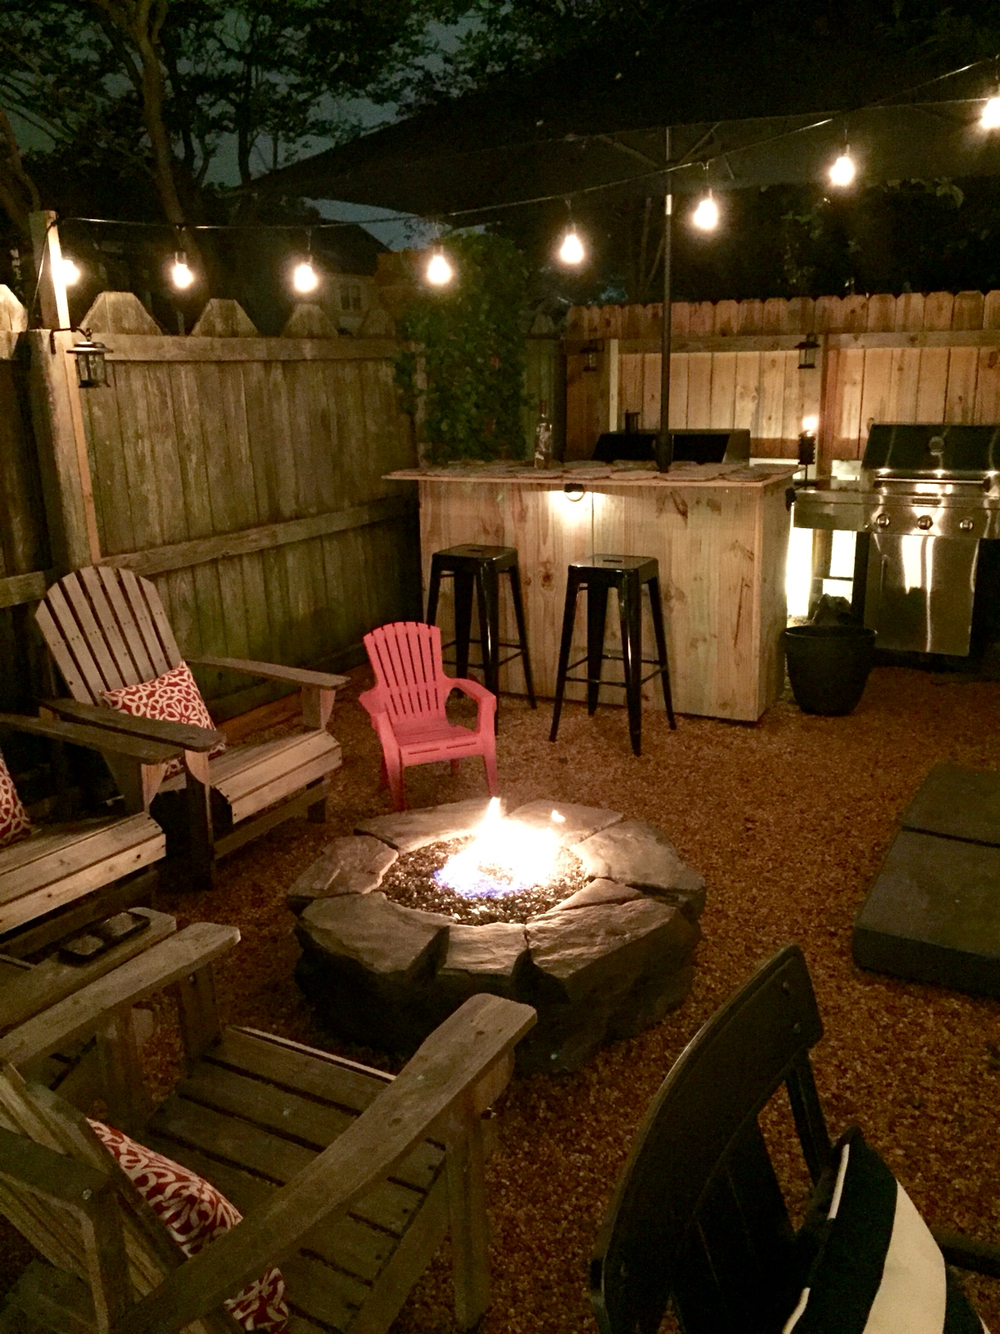 18 Fire Pit Ideas For Your Backyard - Best of DIY Ideas on Backyard Fire Pit Ideas Diy id=77376